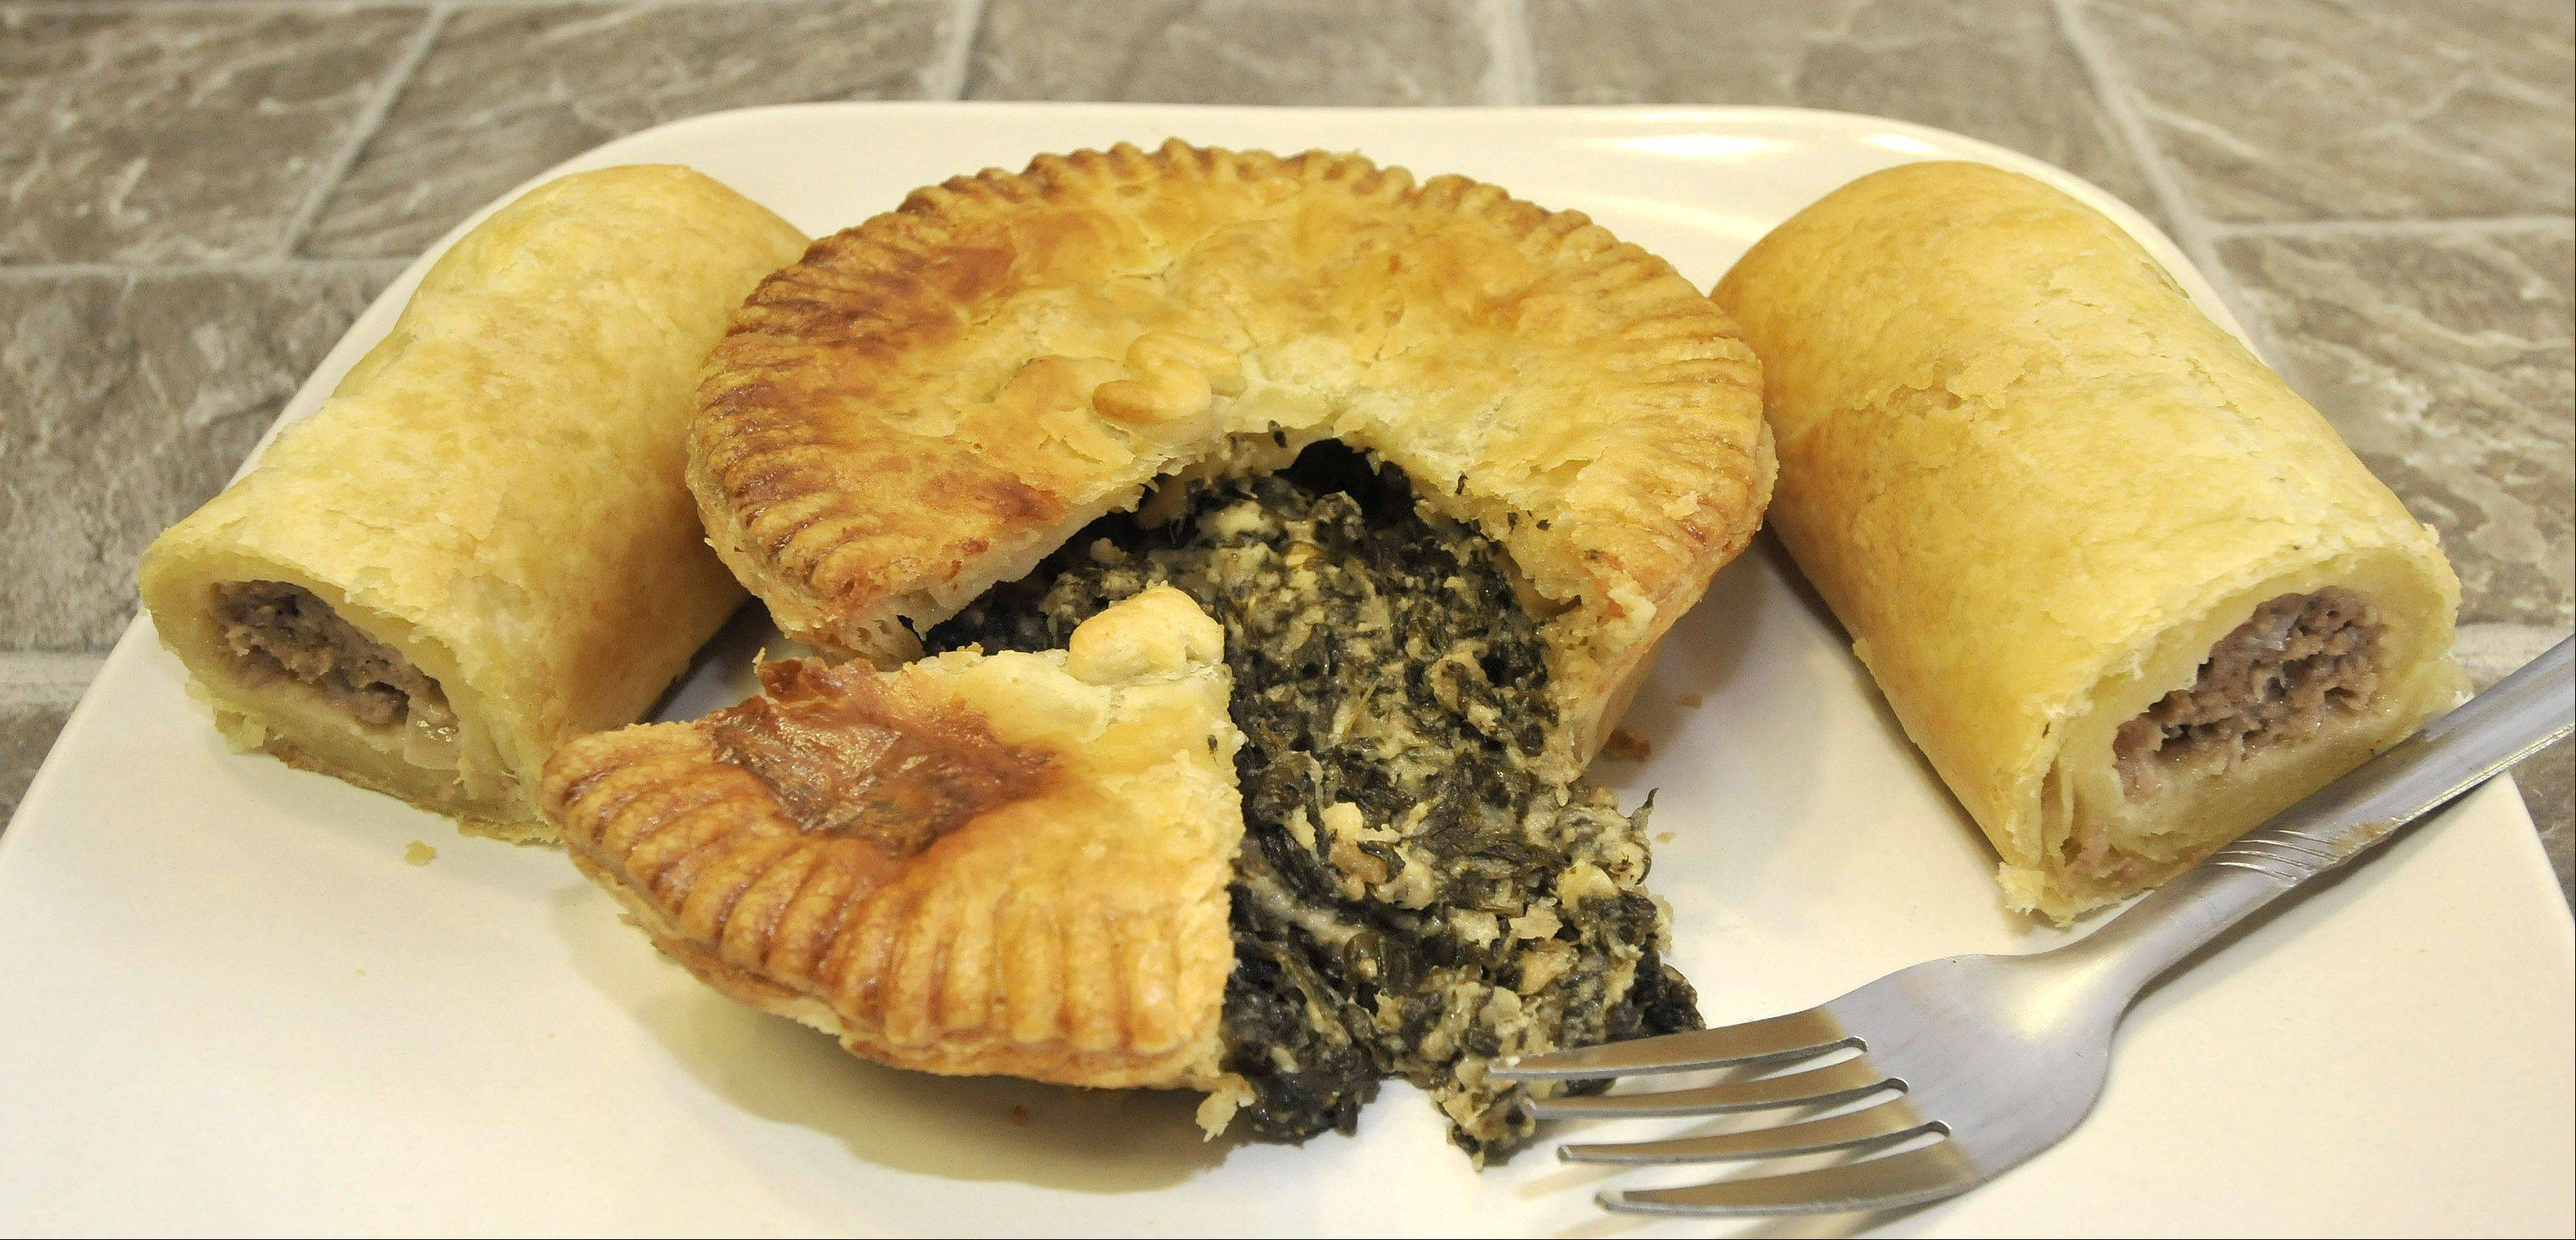 Spinach- and feta-stuffed savory pies and sausage rolls are on the menu at Pie Boss in Aurora.